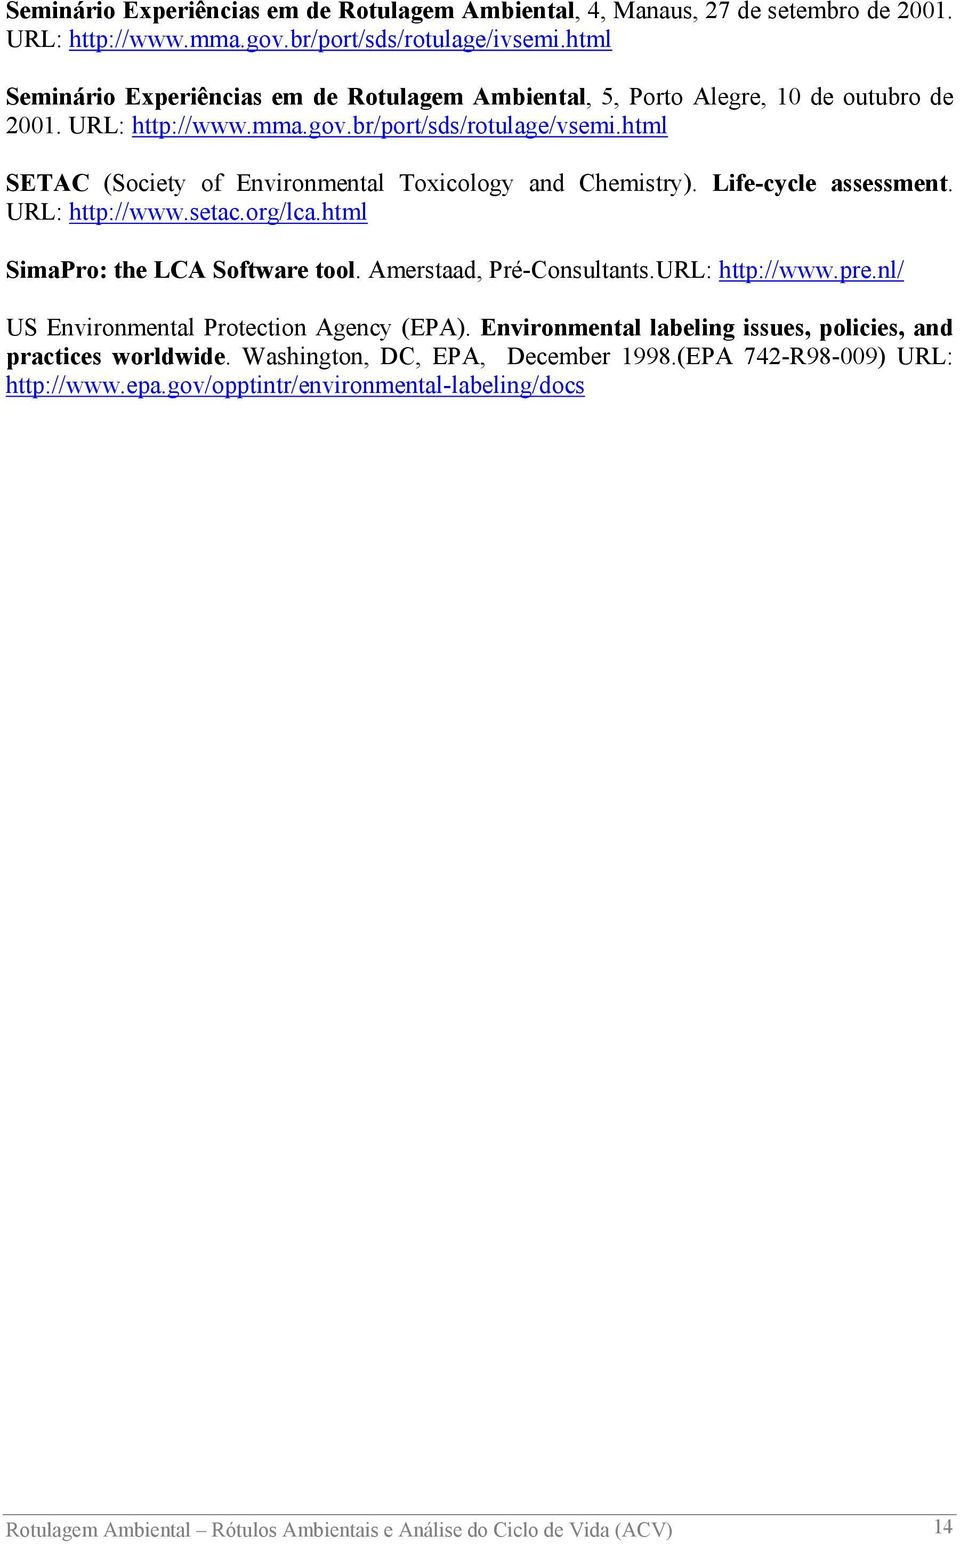 html SETAC (Society of Environmental Toxicology and Chemistry). Life-cycle assessment. URL: http://www.setac.org/lca.html SimaPro: the LCA Software tool. Amerstaad, Pré-Consultants.